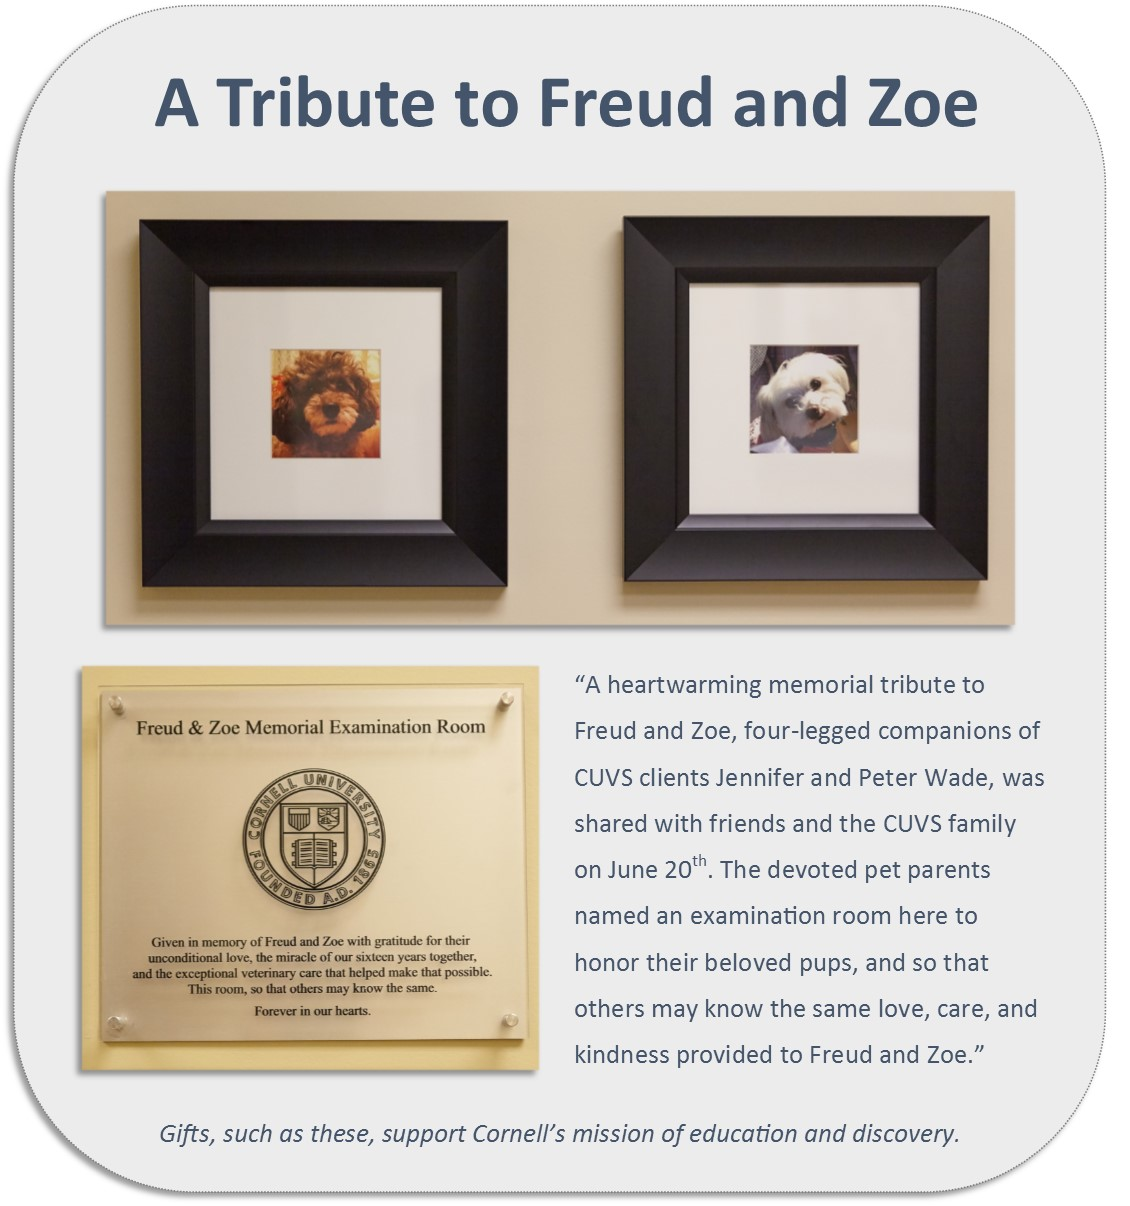 A tribute to Freud and Zoe